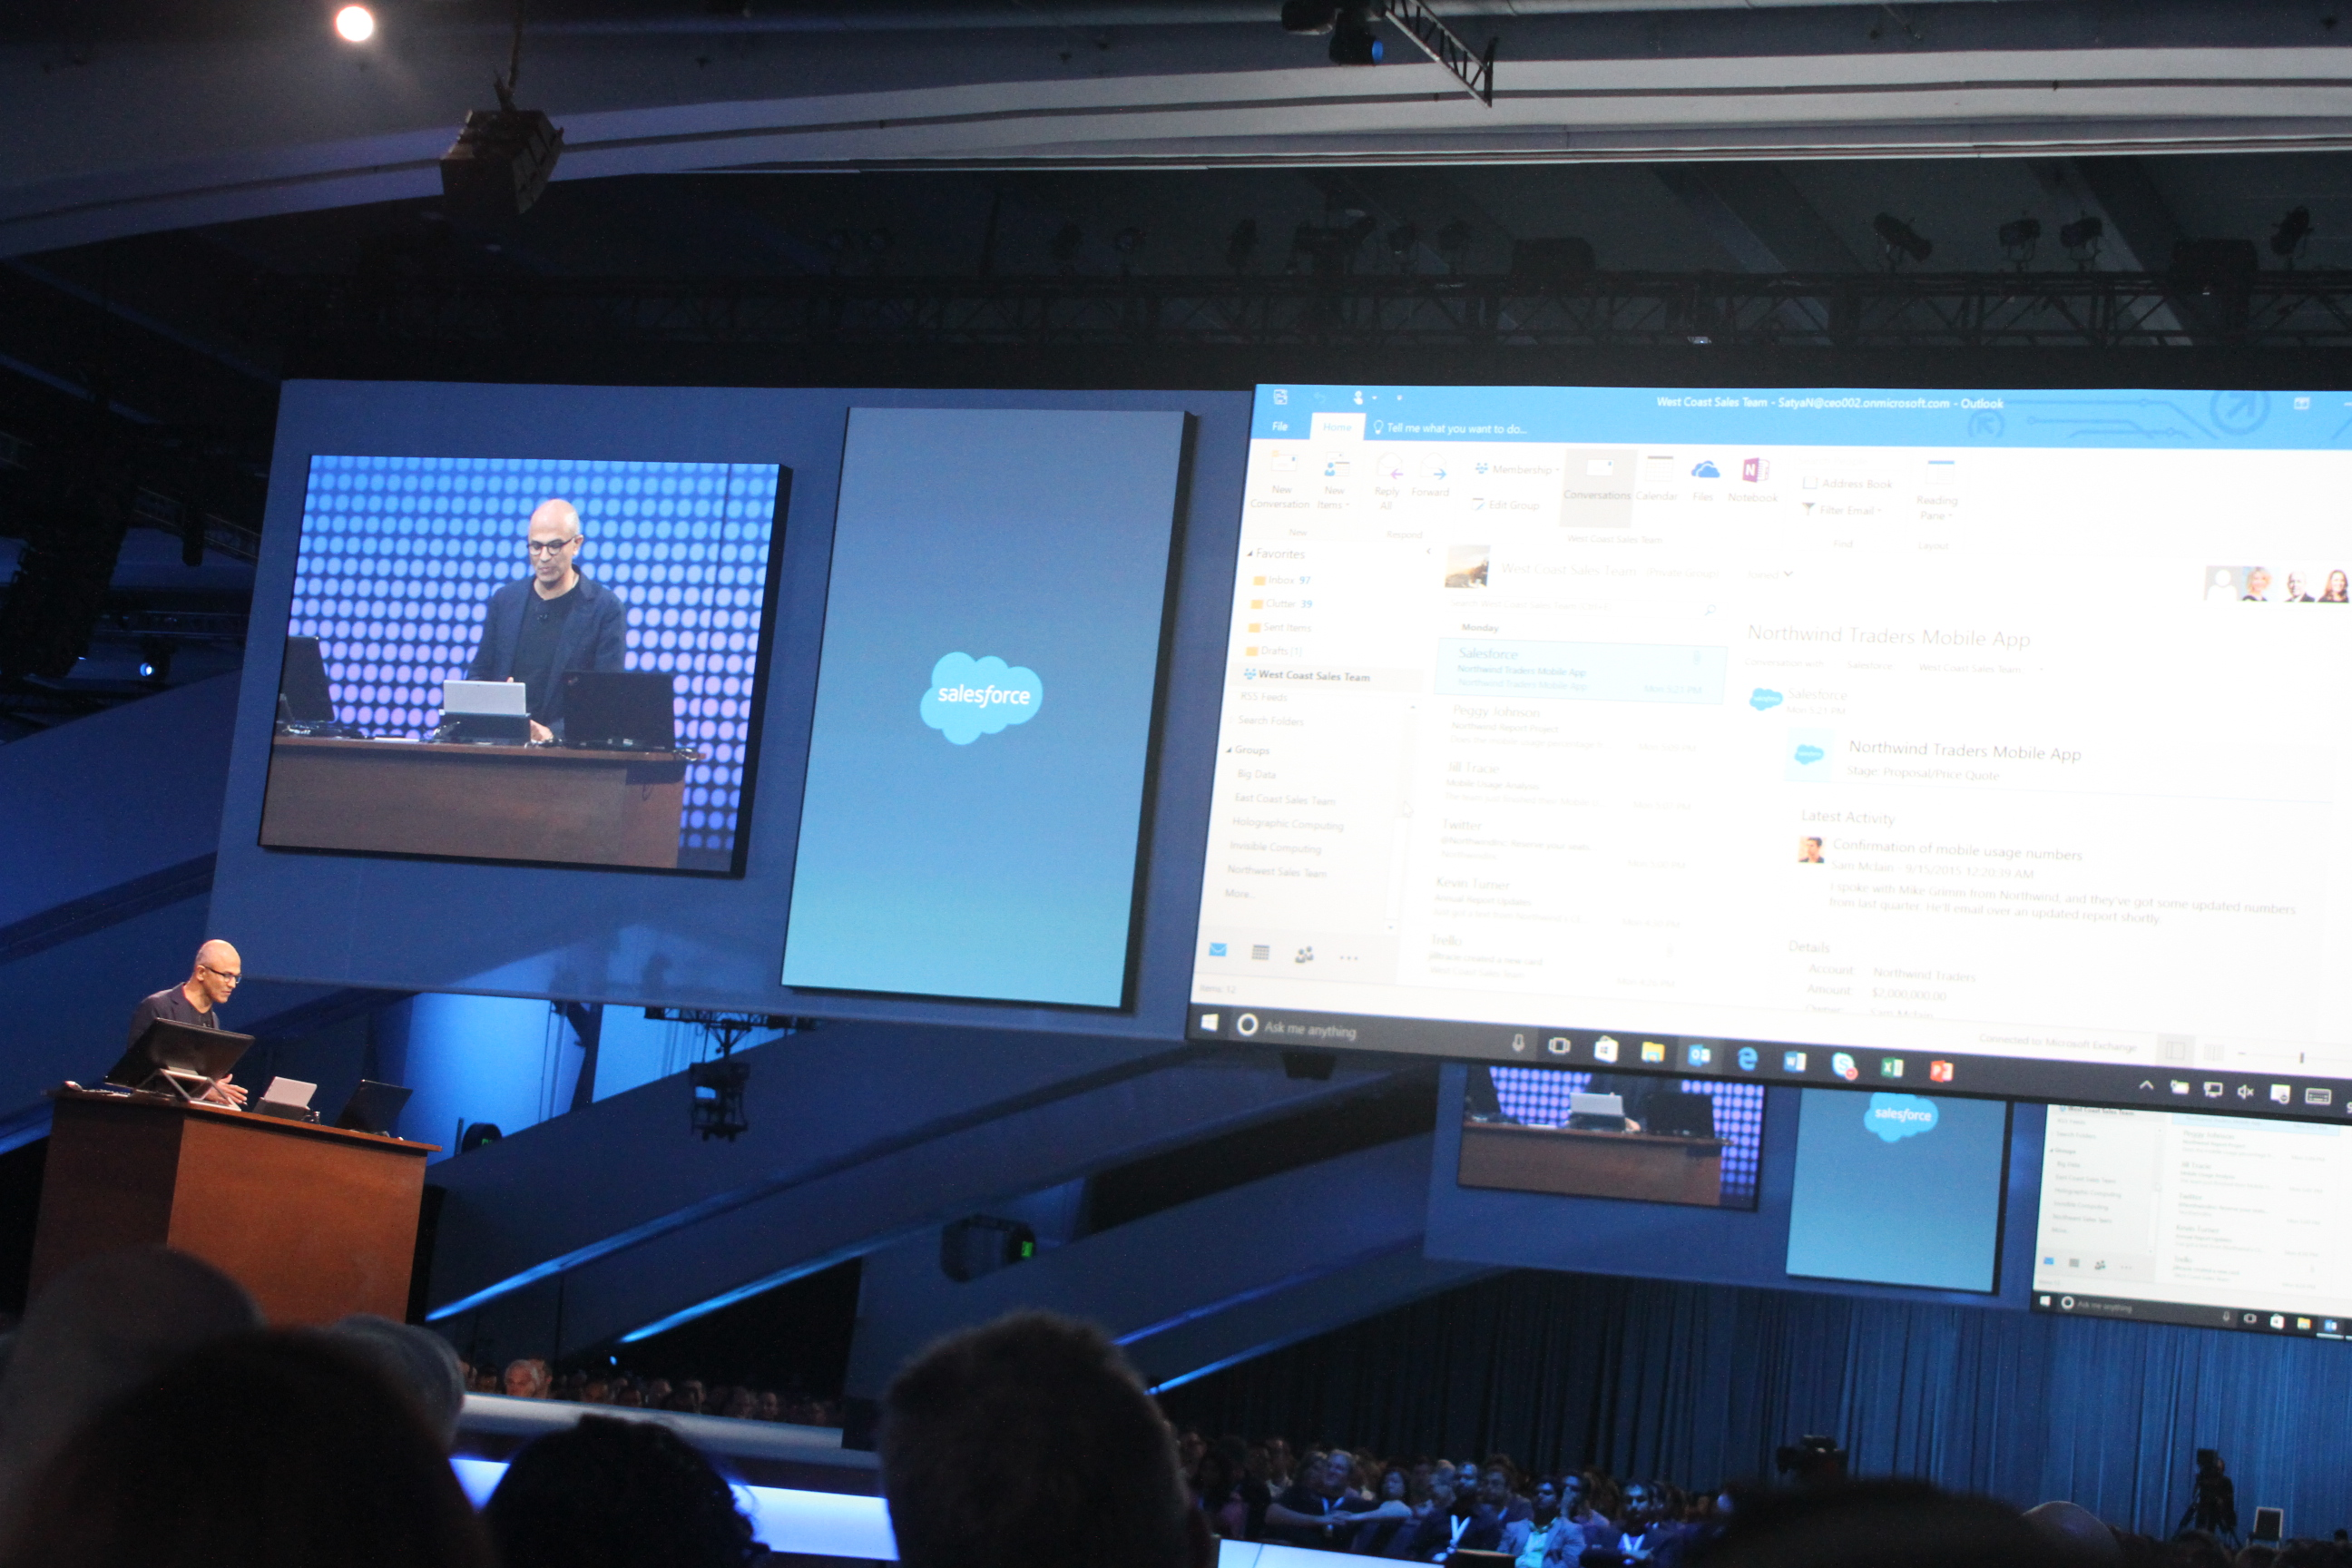 Microsoft chief executive Satya Nadella speaks at Salesforce's 2015 Dreamforce conference in San Francisco on Sept. 16.